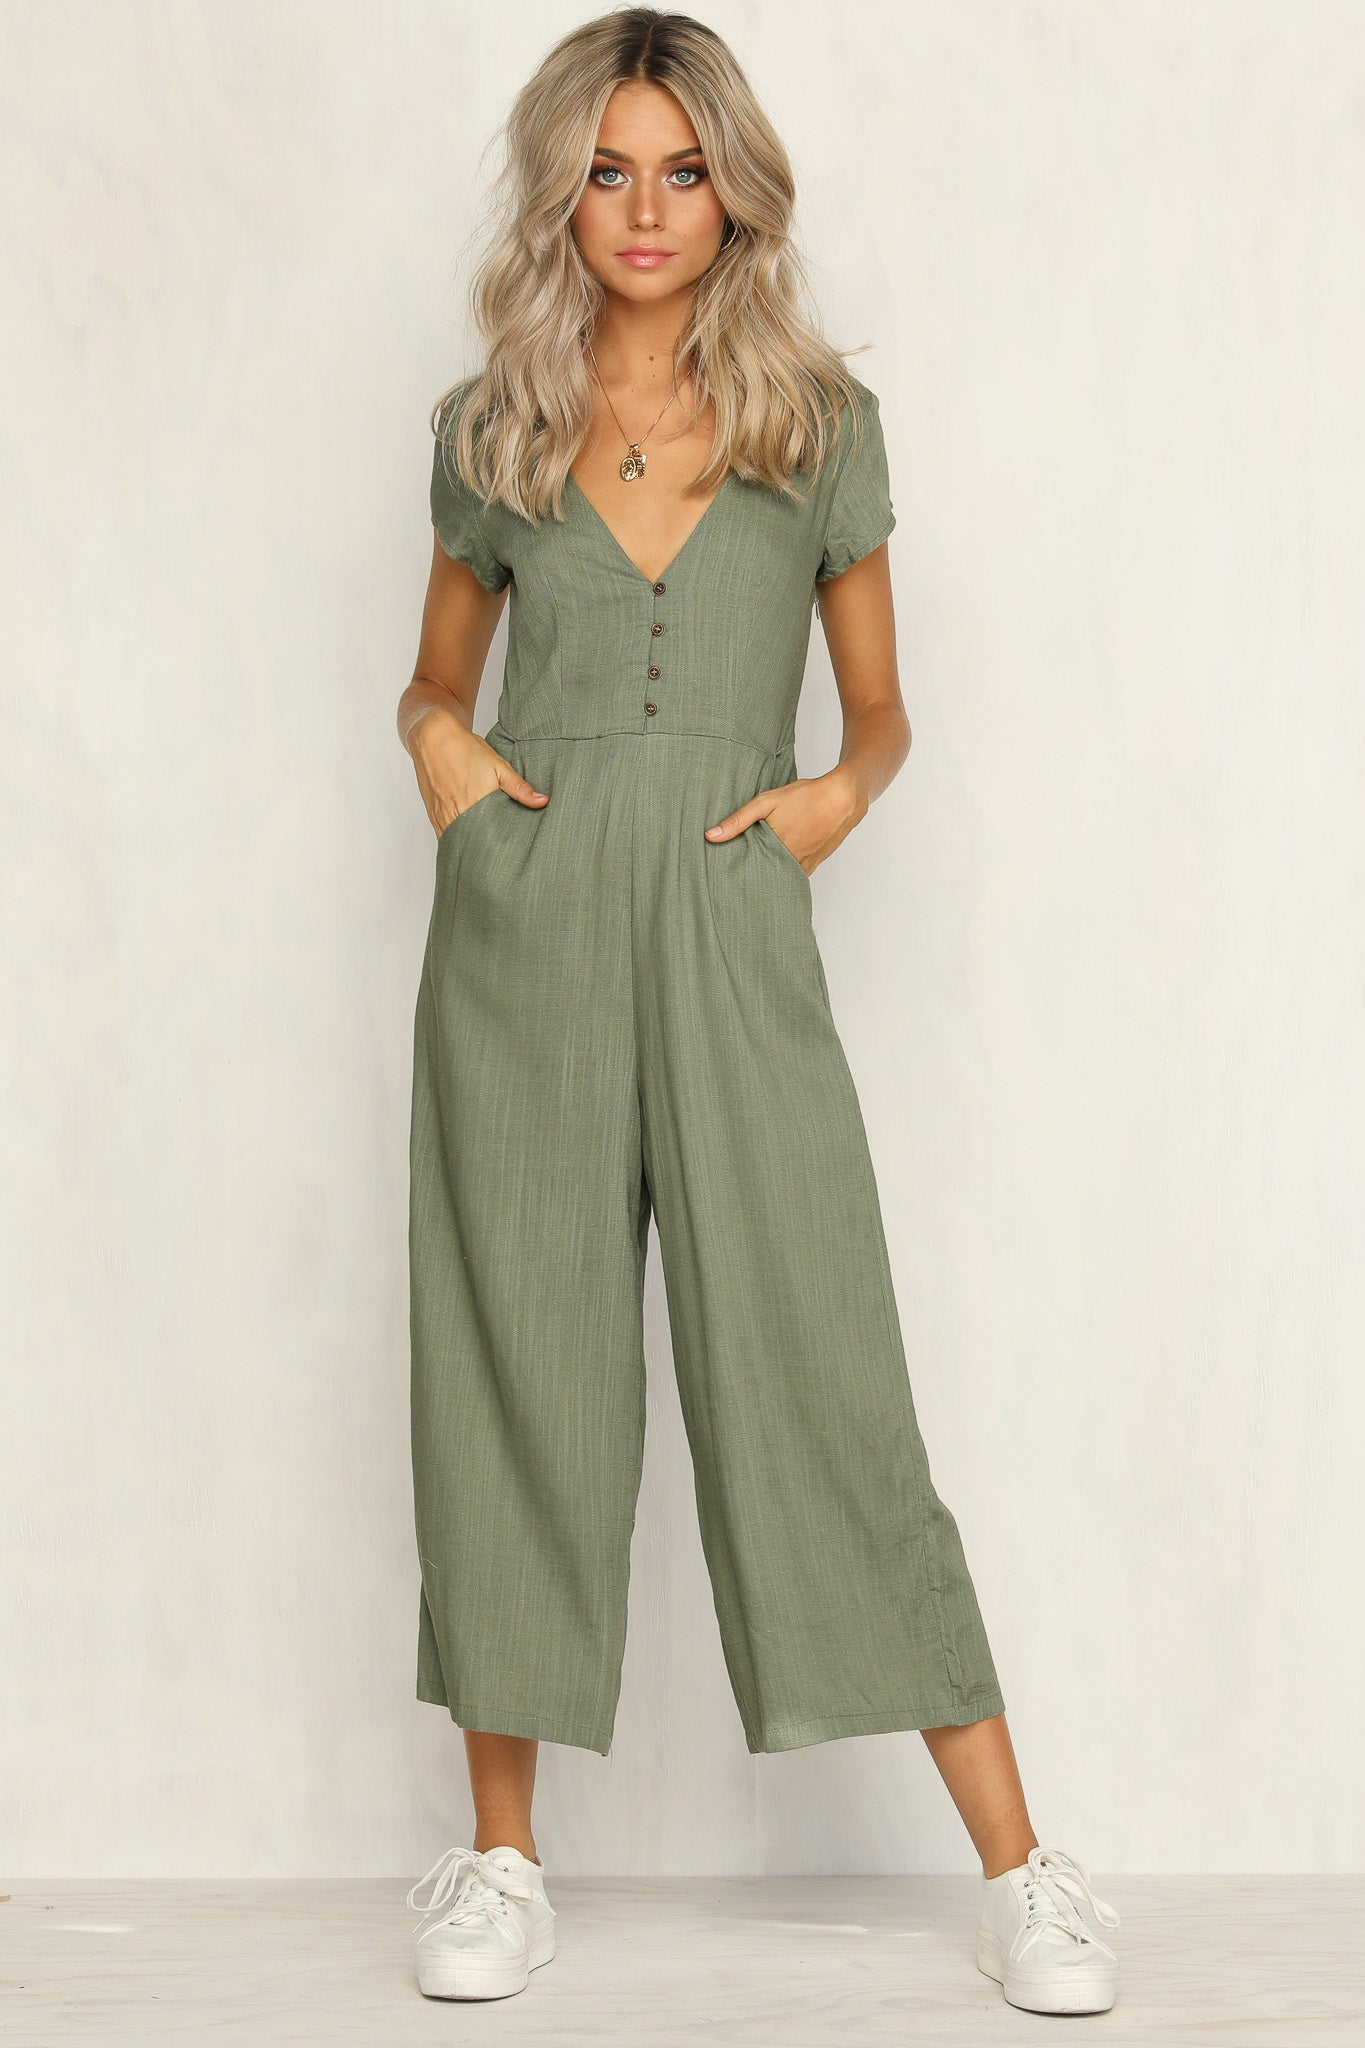 In My Dreams Jumpsuit (Khaki)